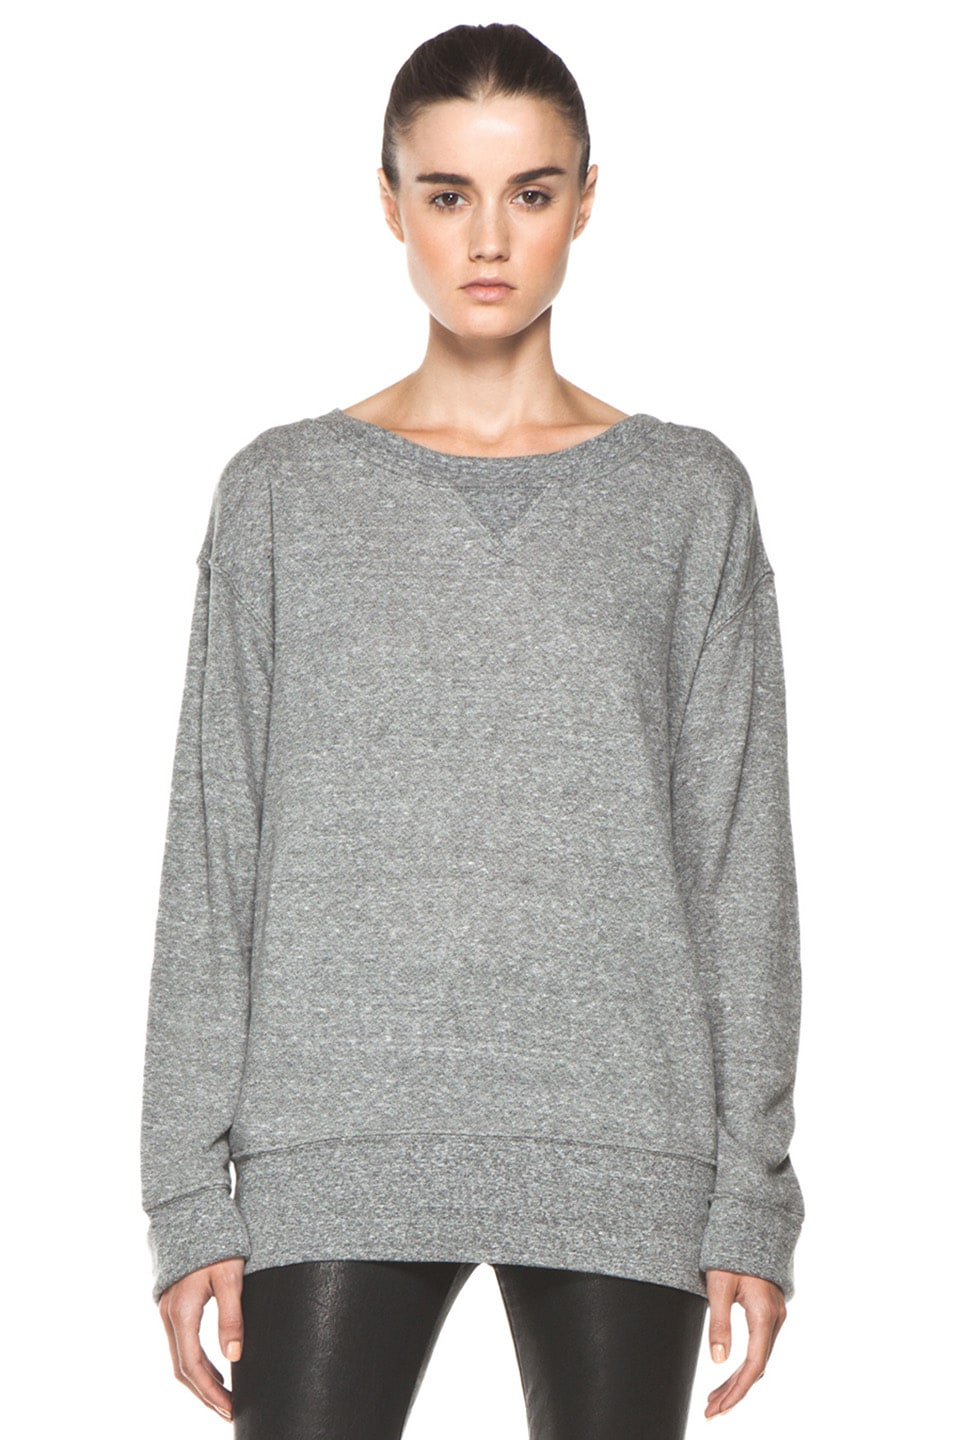 Image 1 of Current/Elliott The Stadium Sweatshirt in Heather Grey